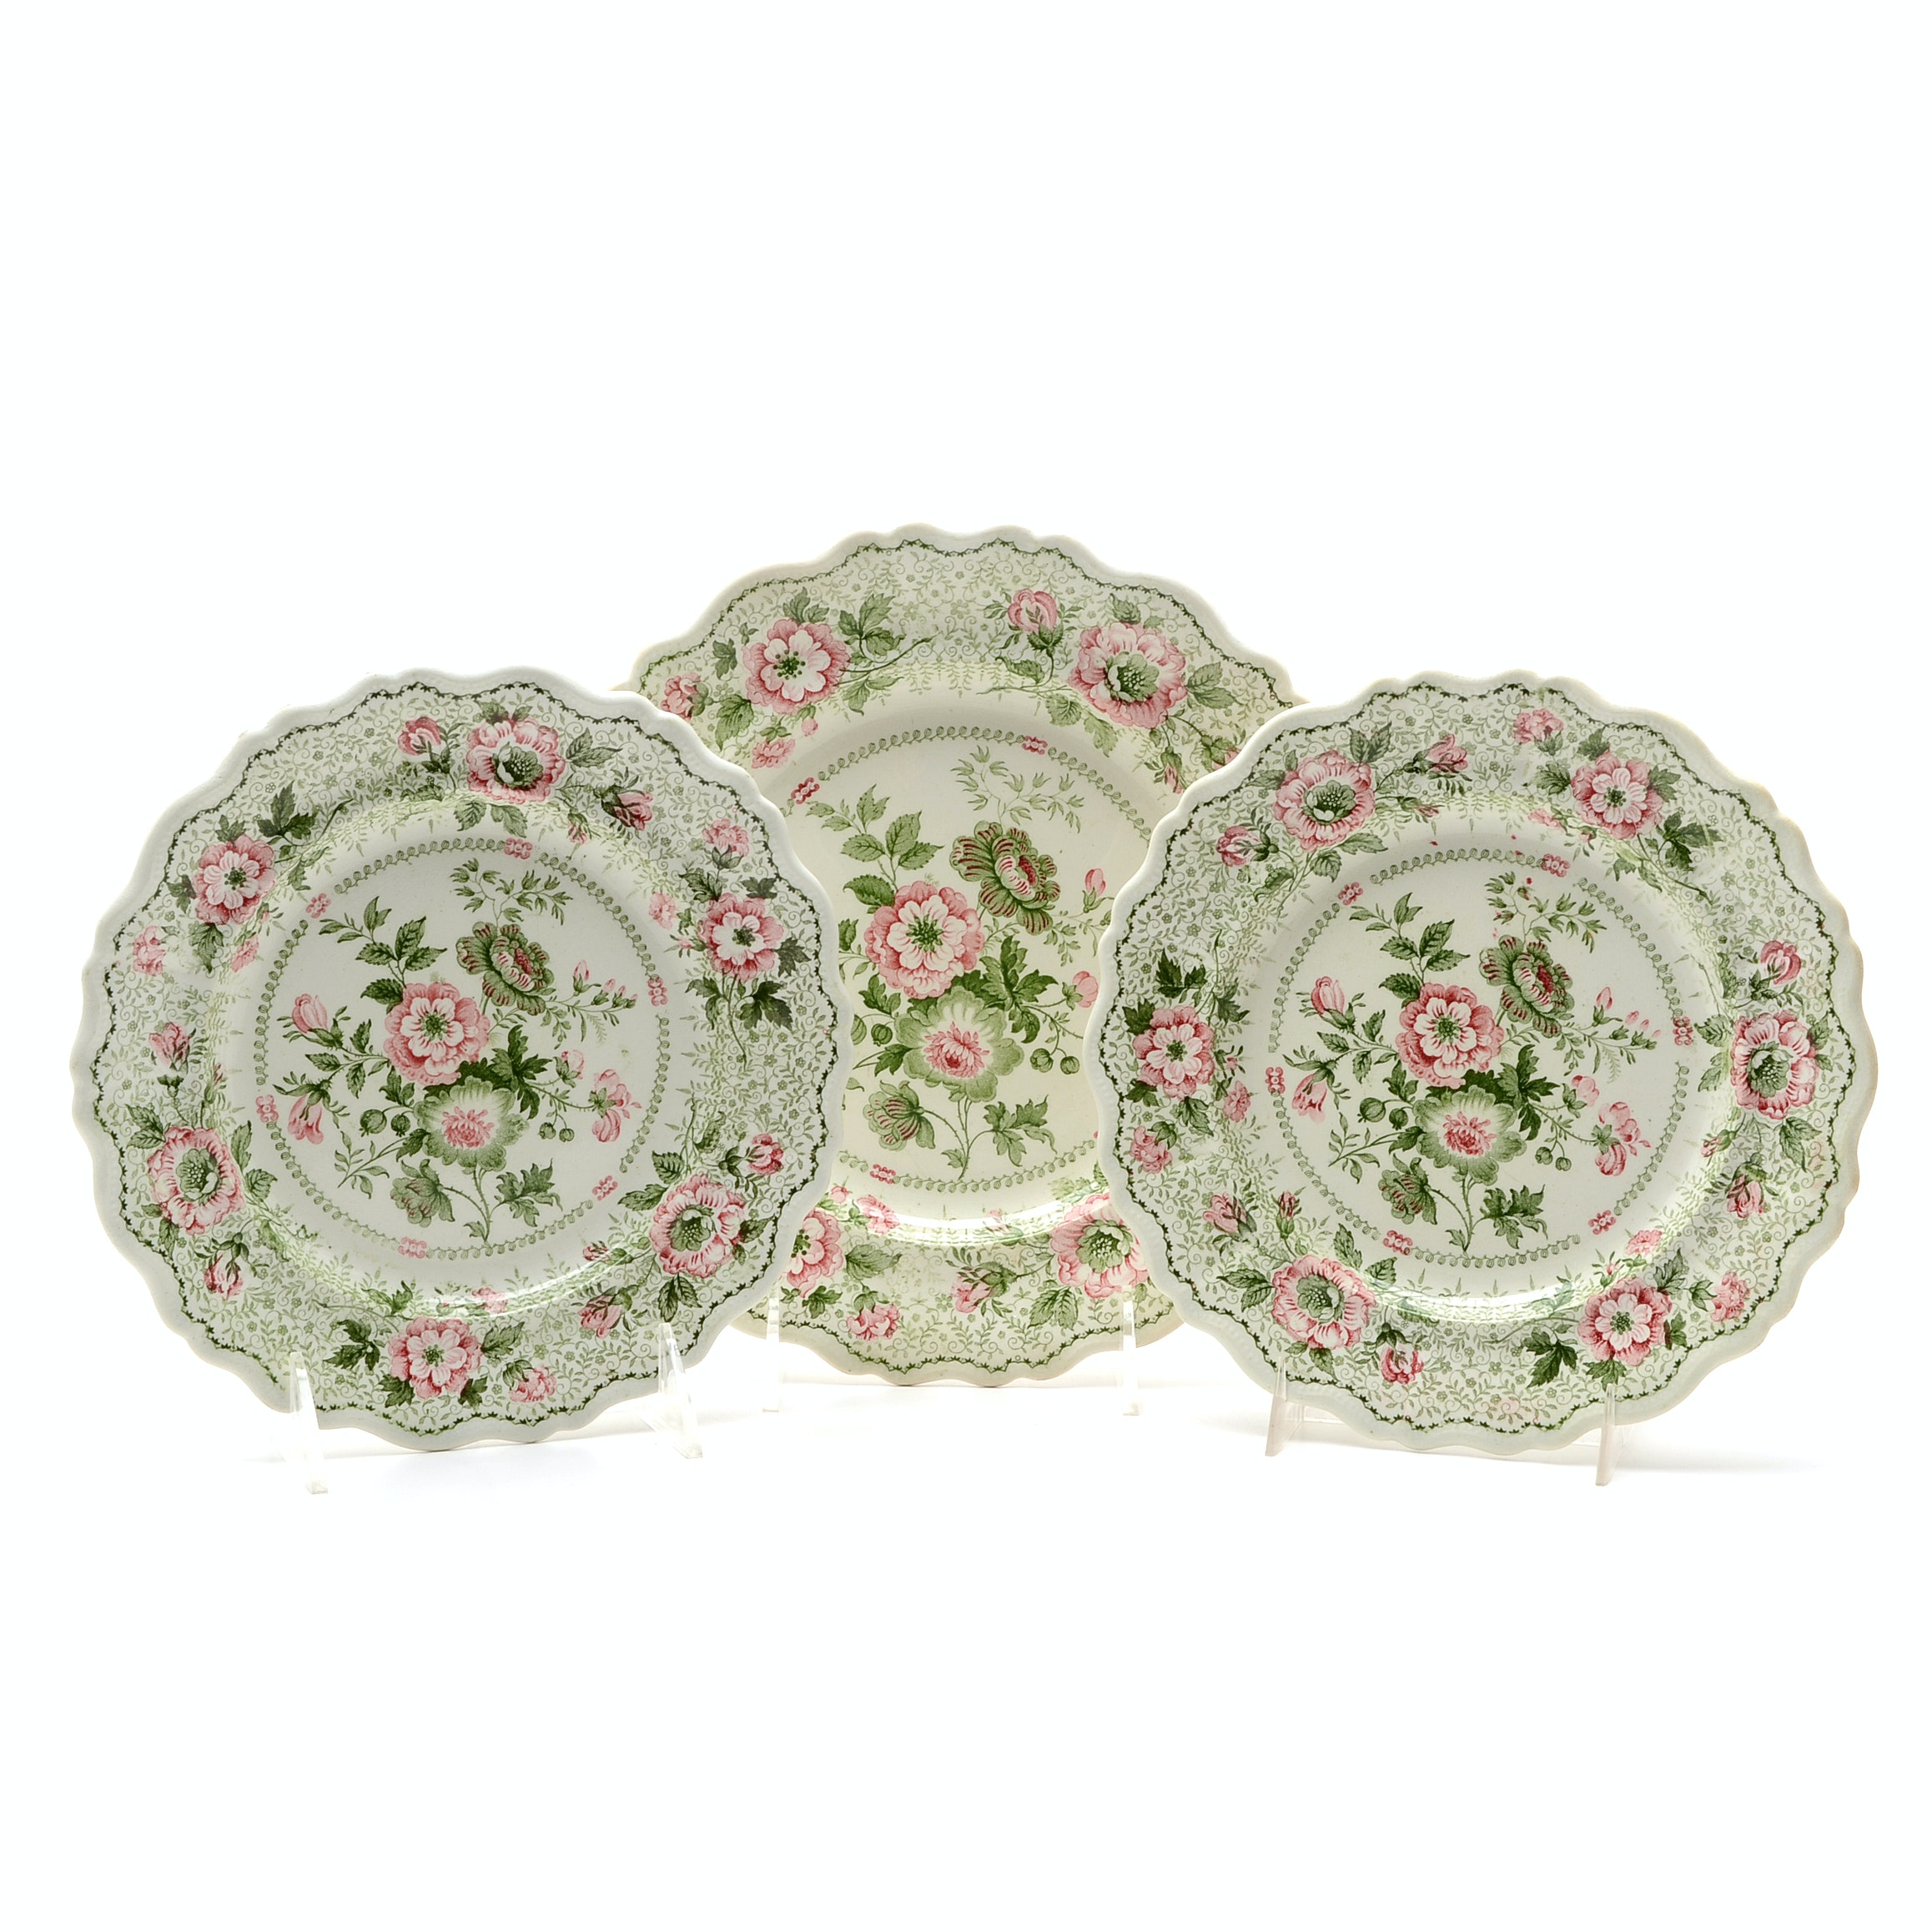 Antique Bi-Color Staffordshire Transferware Luncheon Plates and Salad Plates